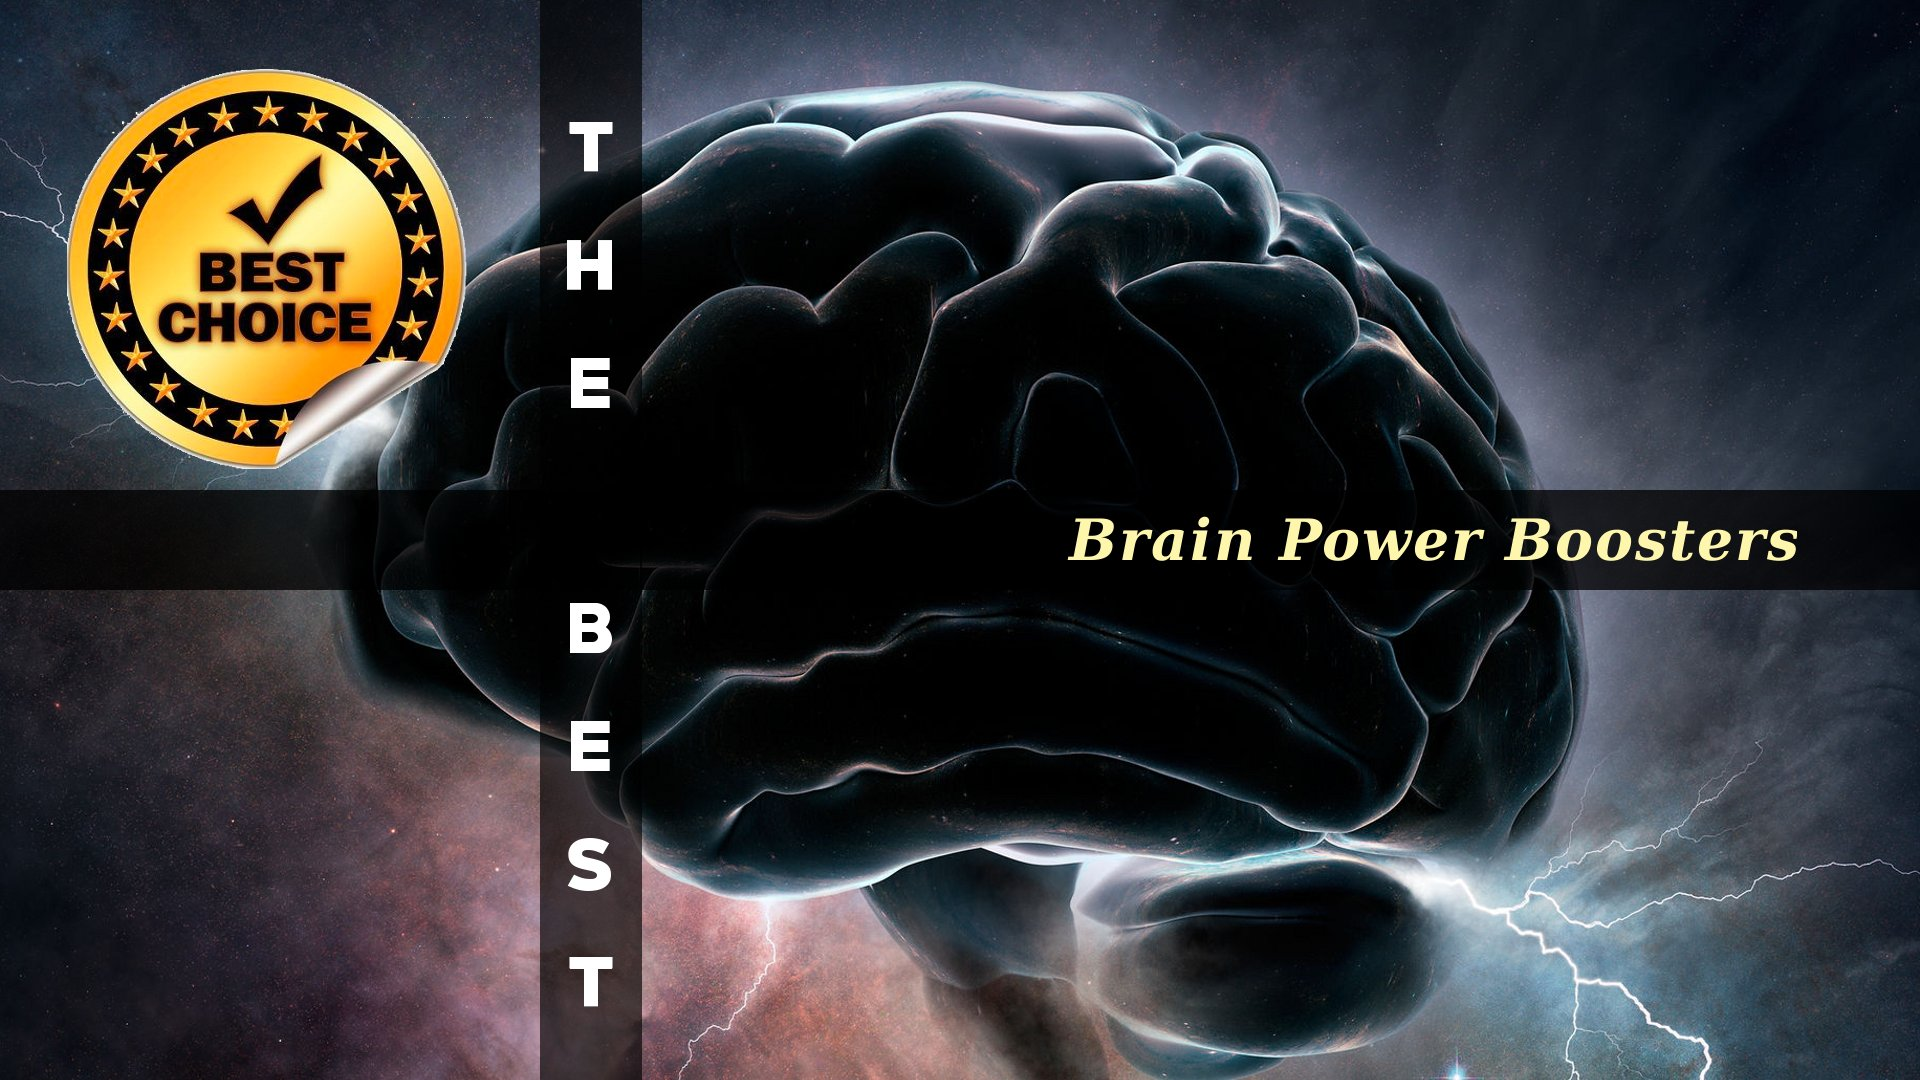 Brain Power Boosters